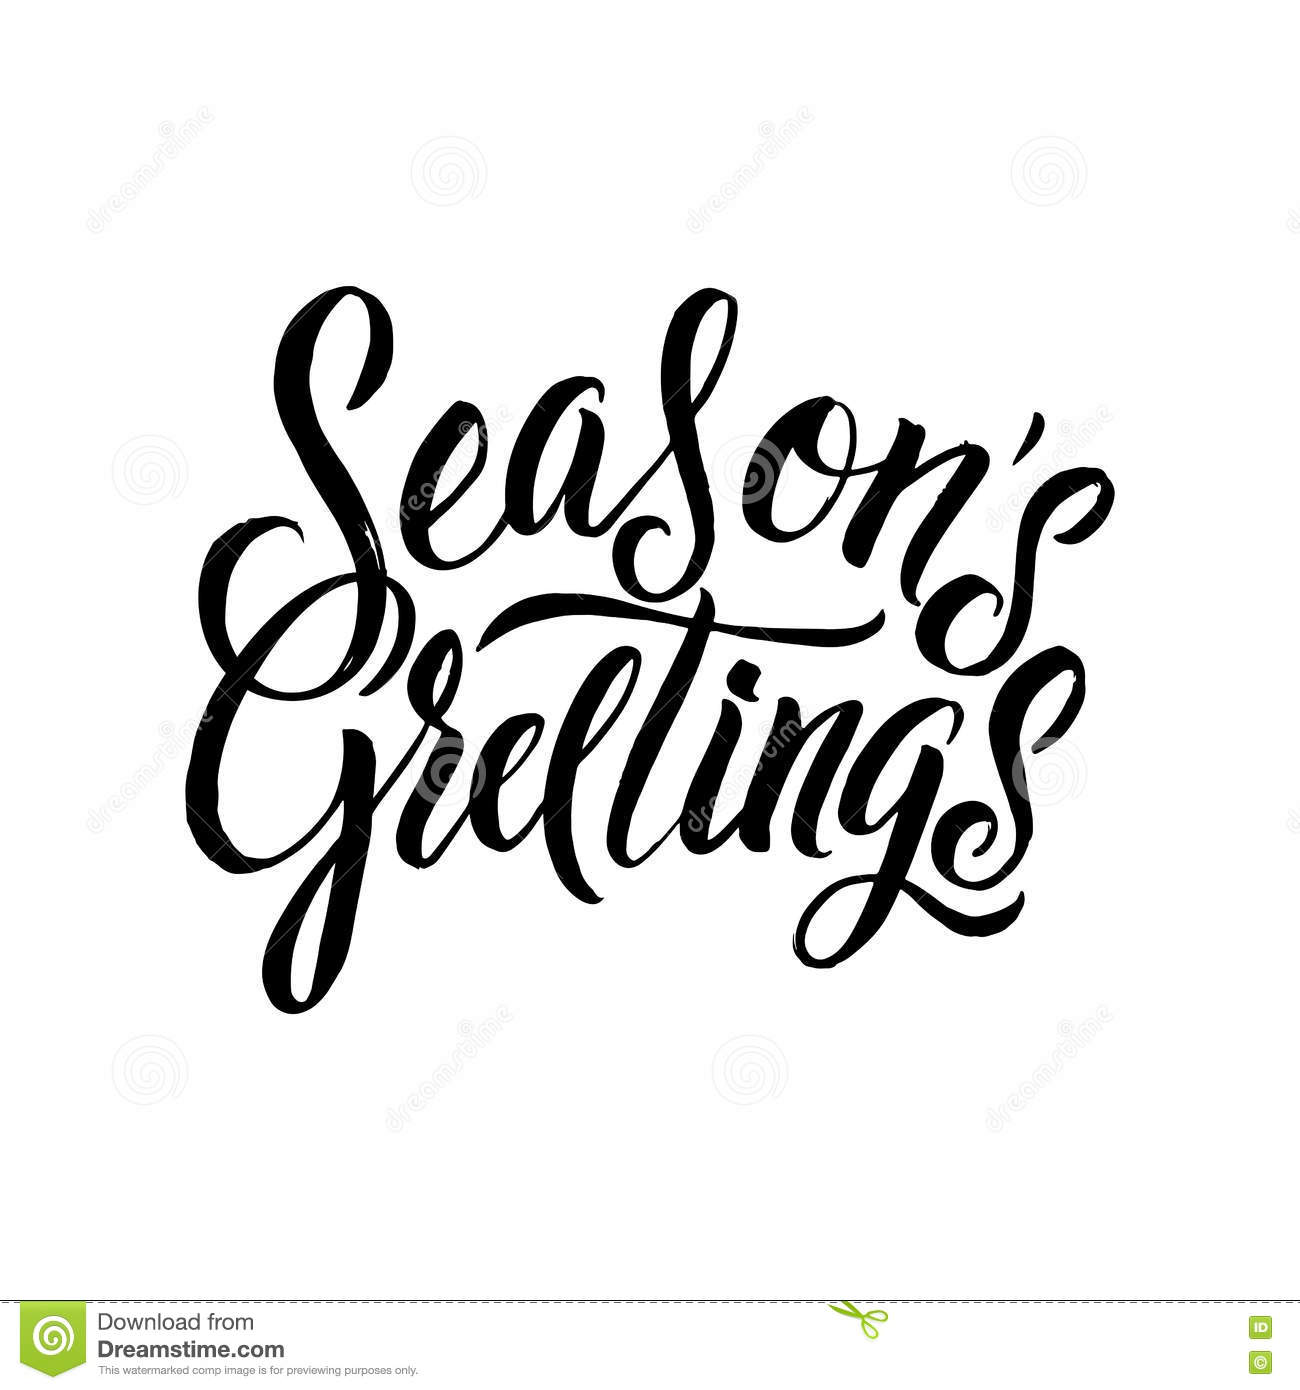 Seasons greetings calligraphy greeting card black typography on royalty free vector download seasons greetings calligraphy greeting card black typography on white background m4hsunfo Choice Image